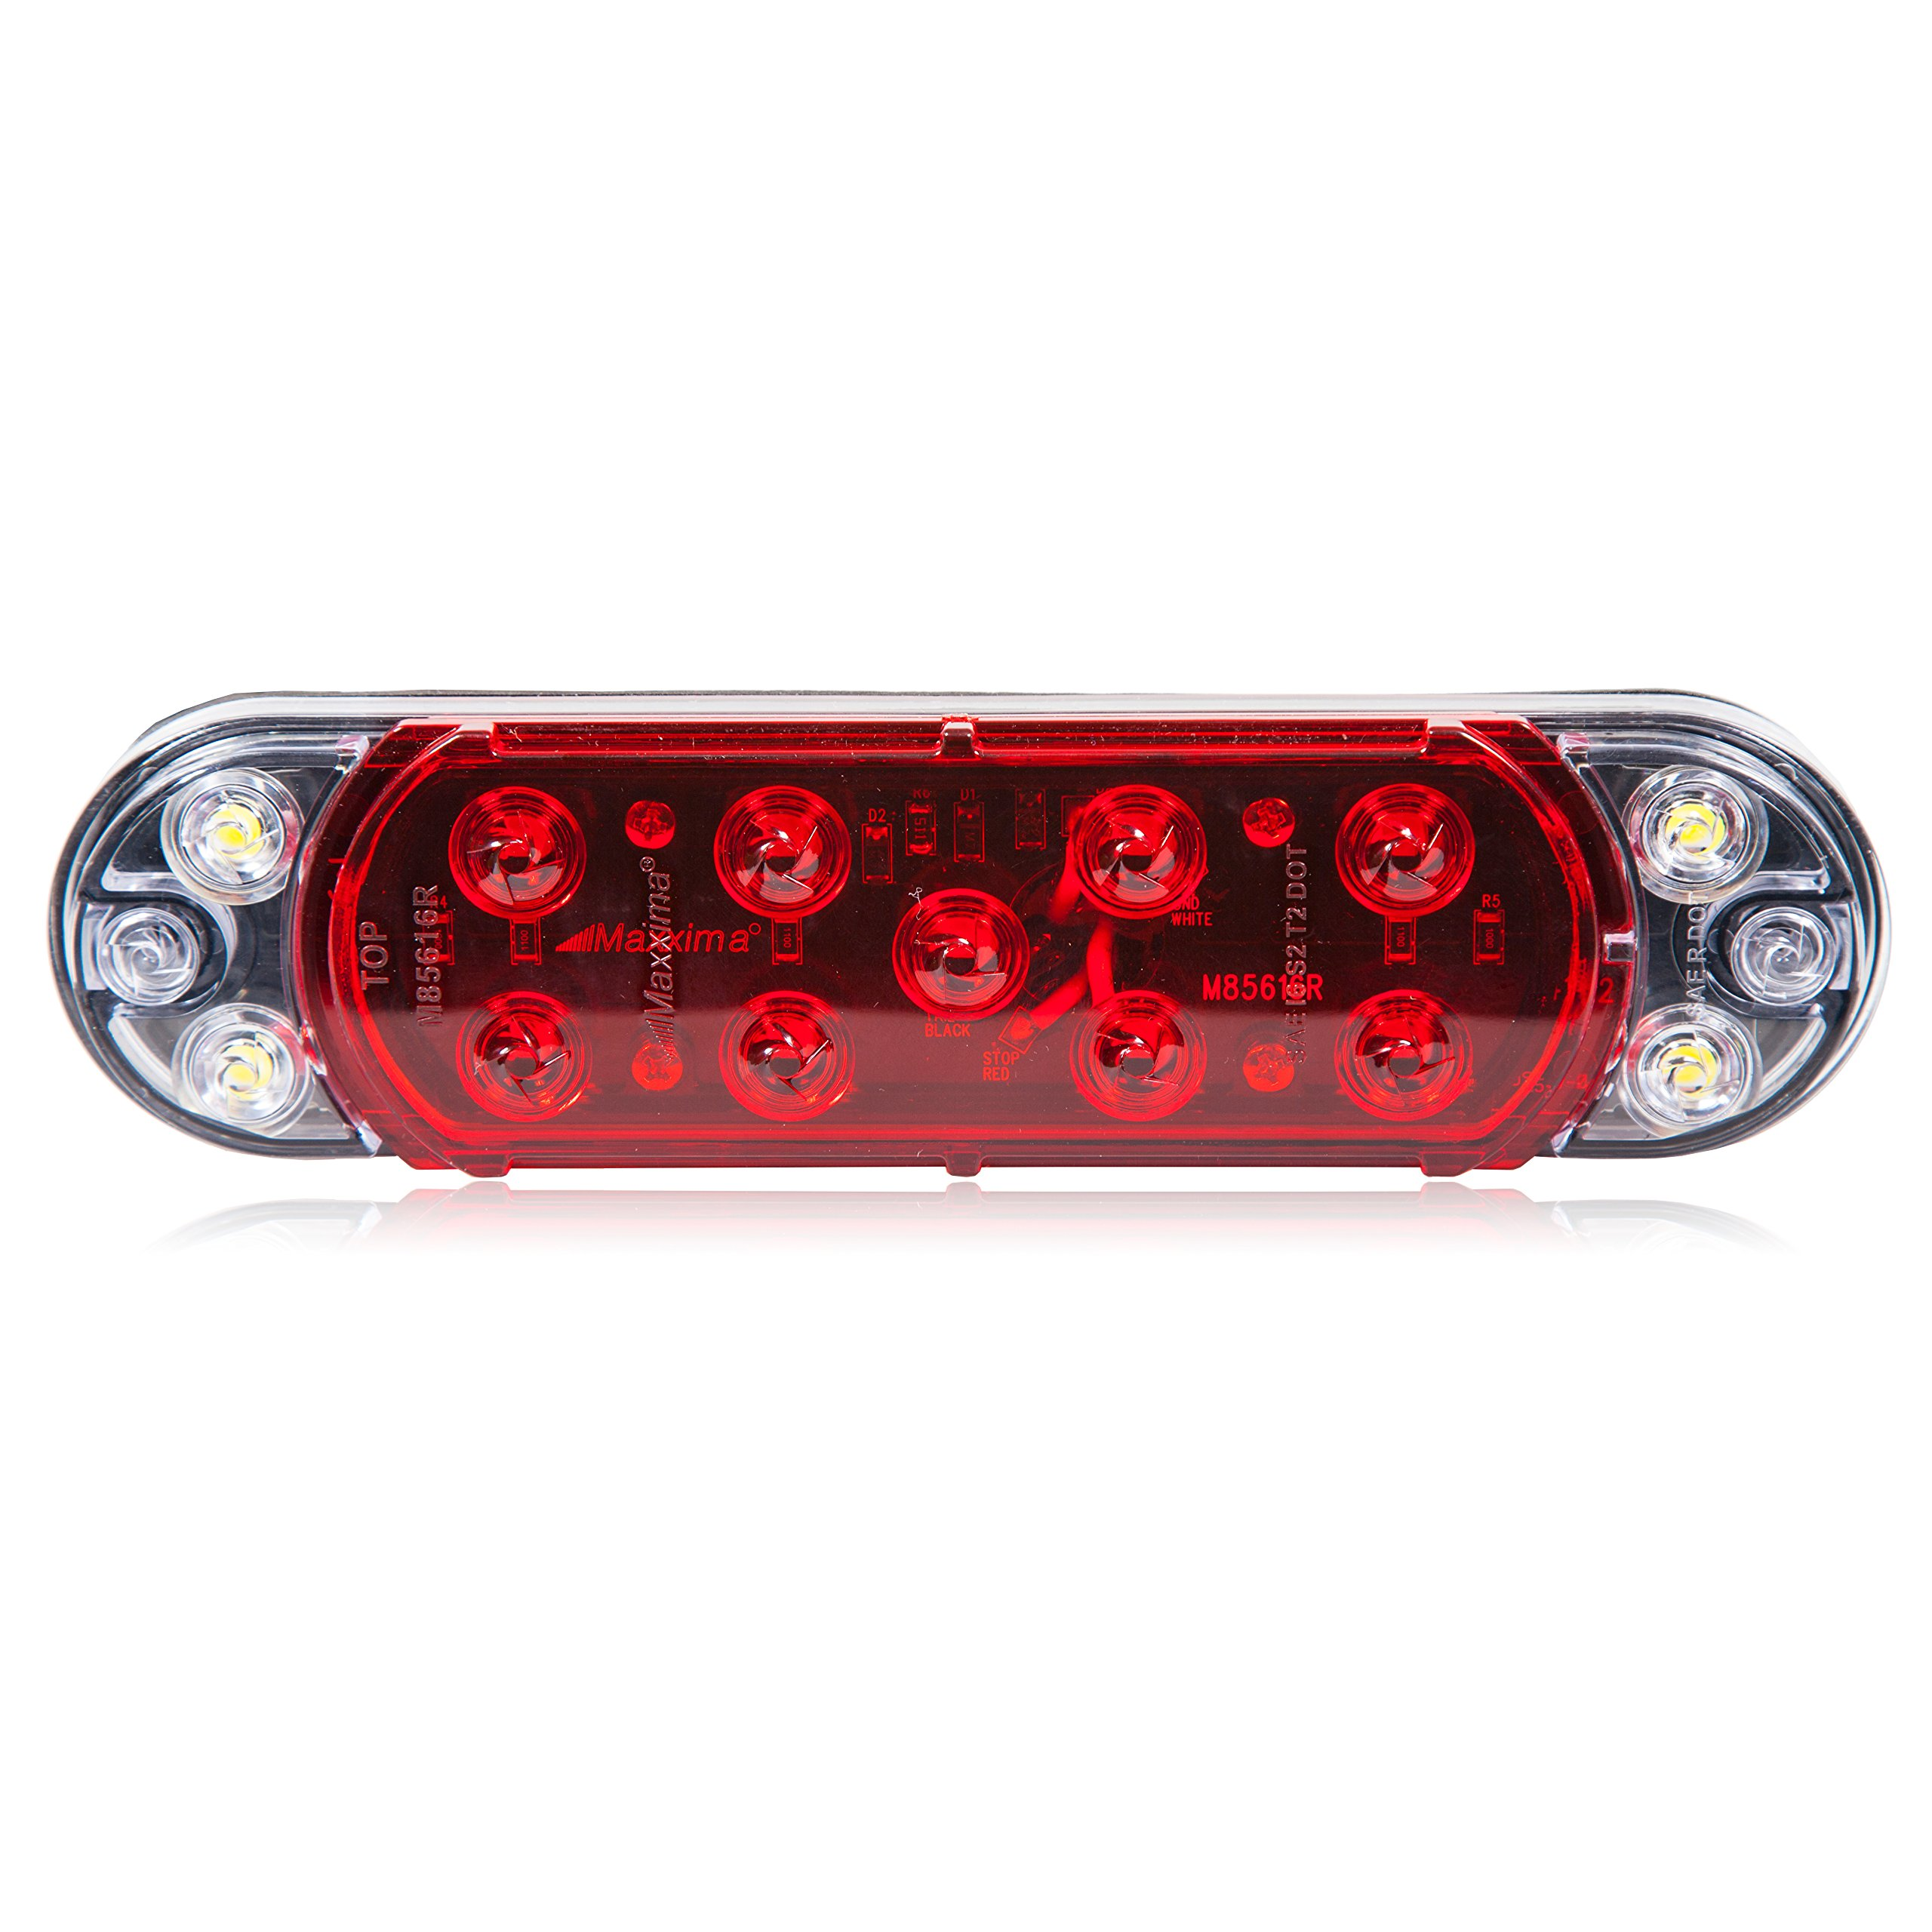 Maxxima M85616R Red/White Hybrid LightningS LED Oval Stop/Tail/Rear Turn and Back-Up LED Light by Maxxima